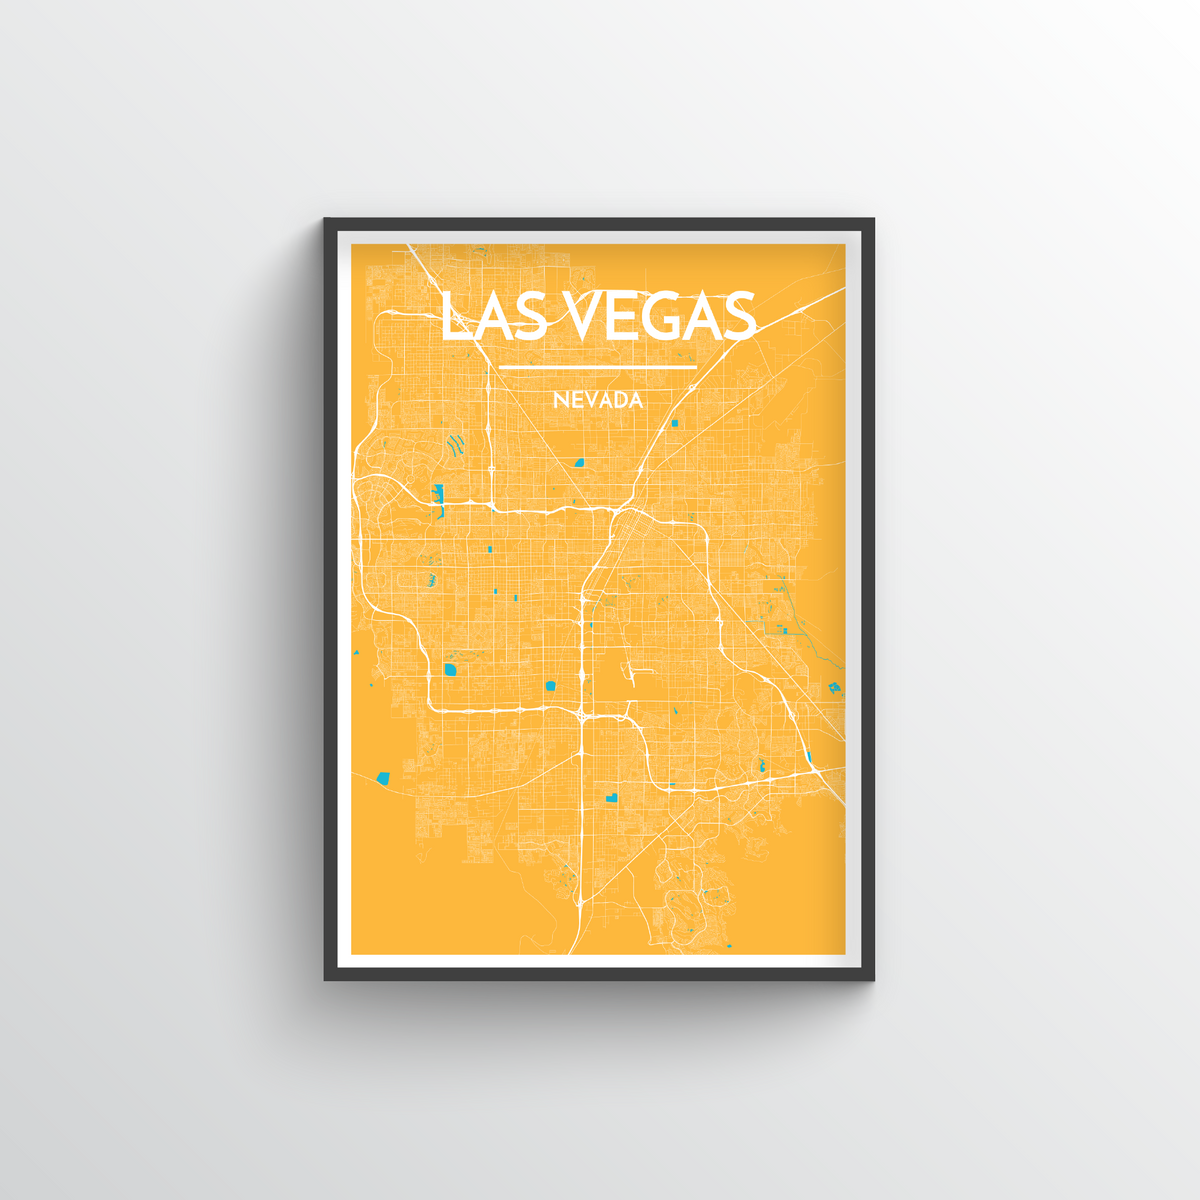 Las Vegas Map Art Print - Point Two Design